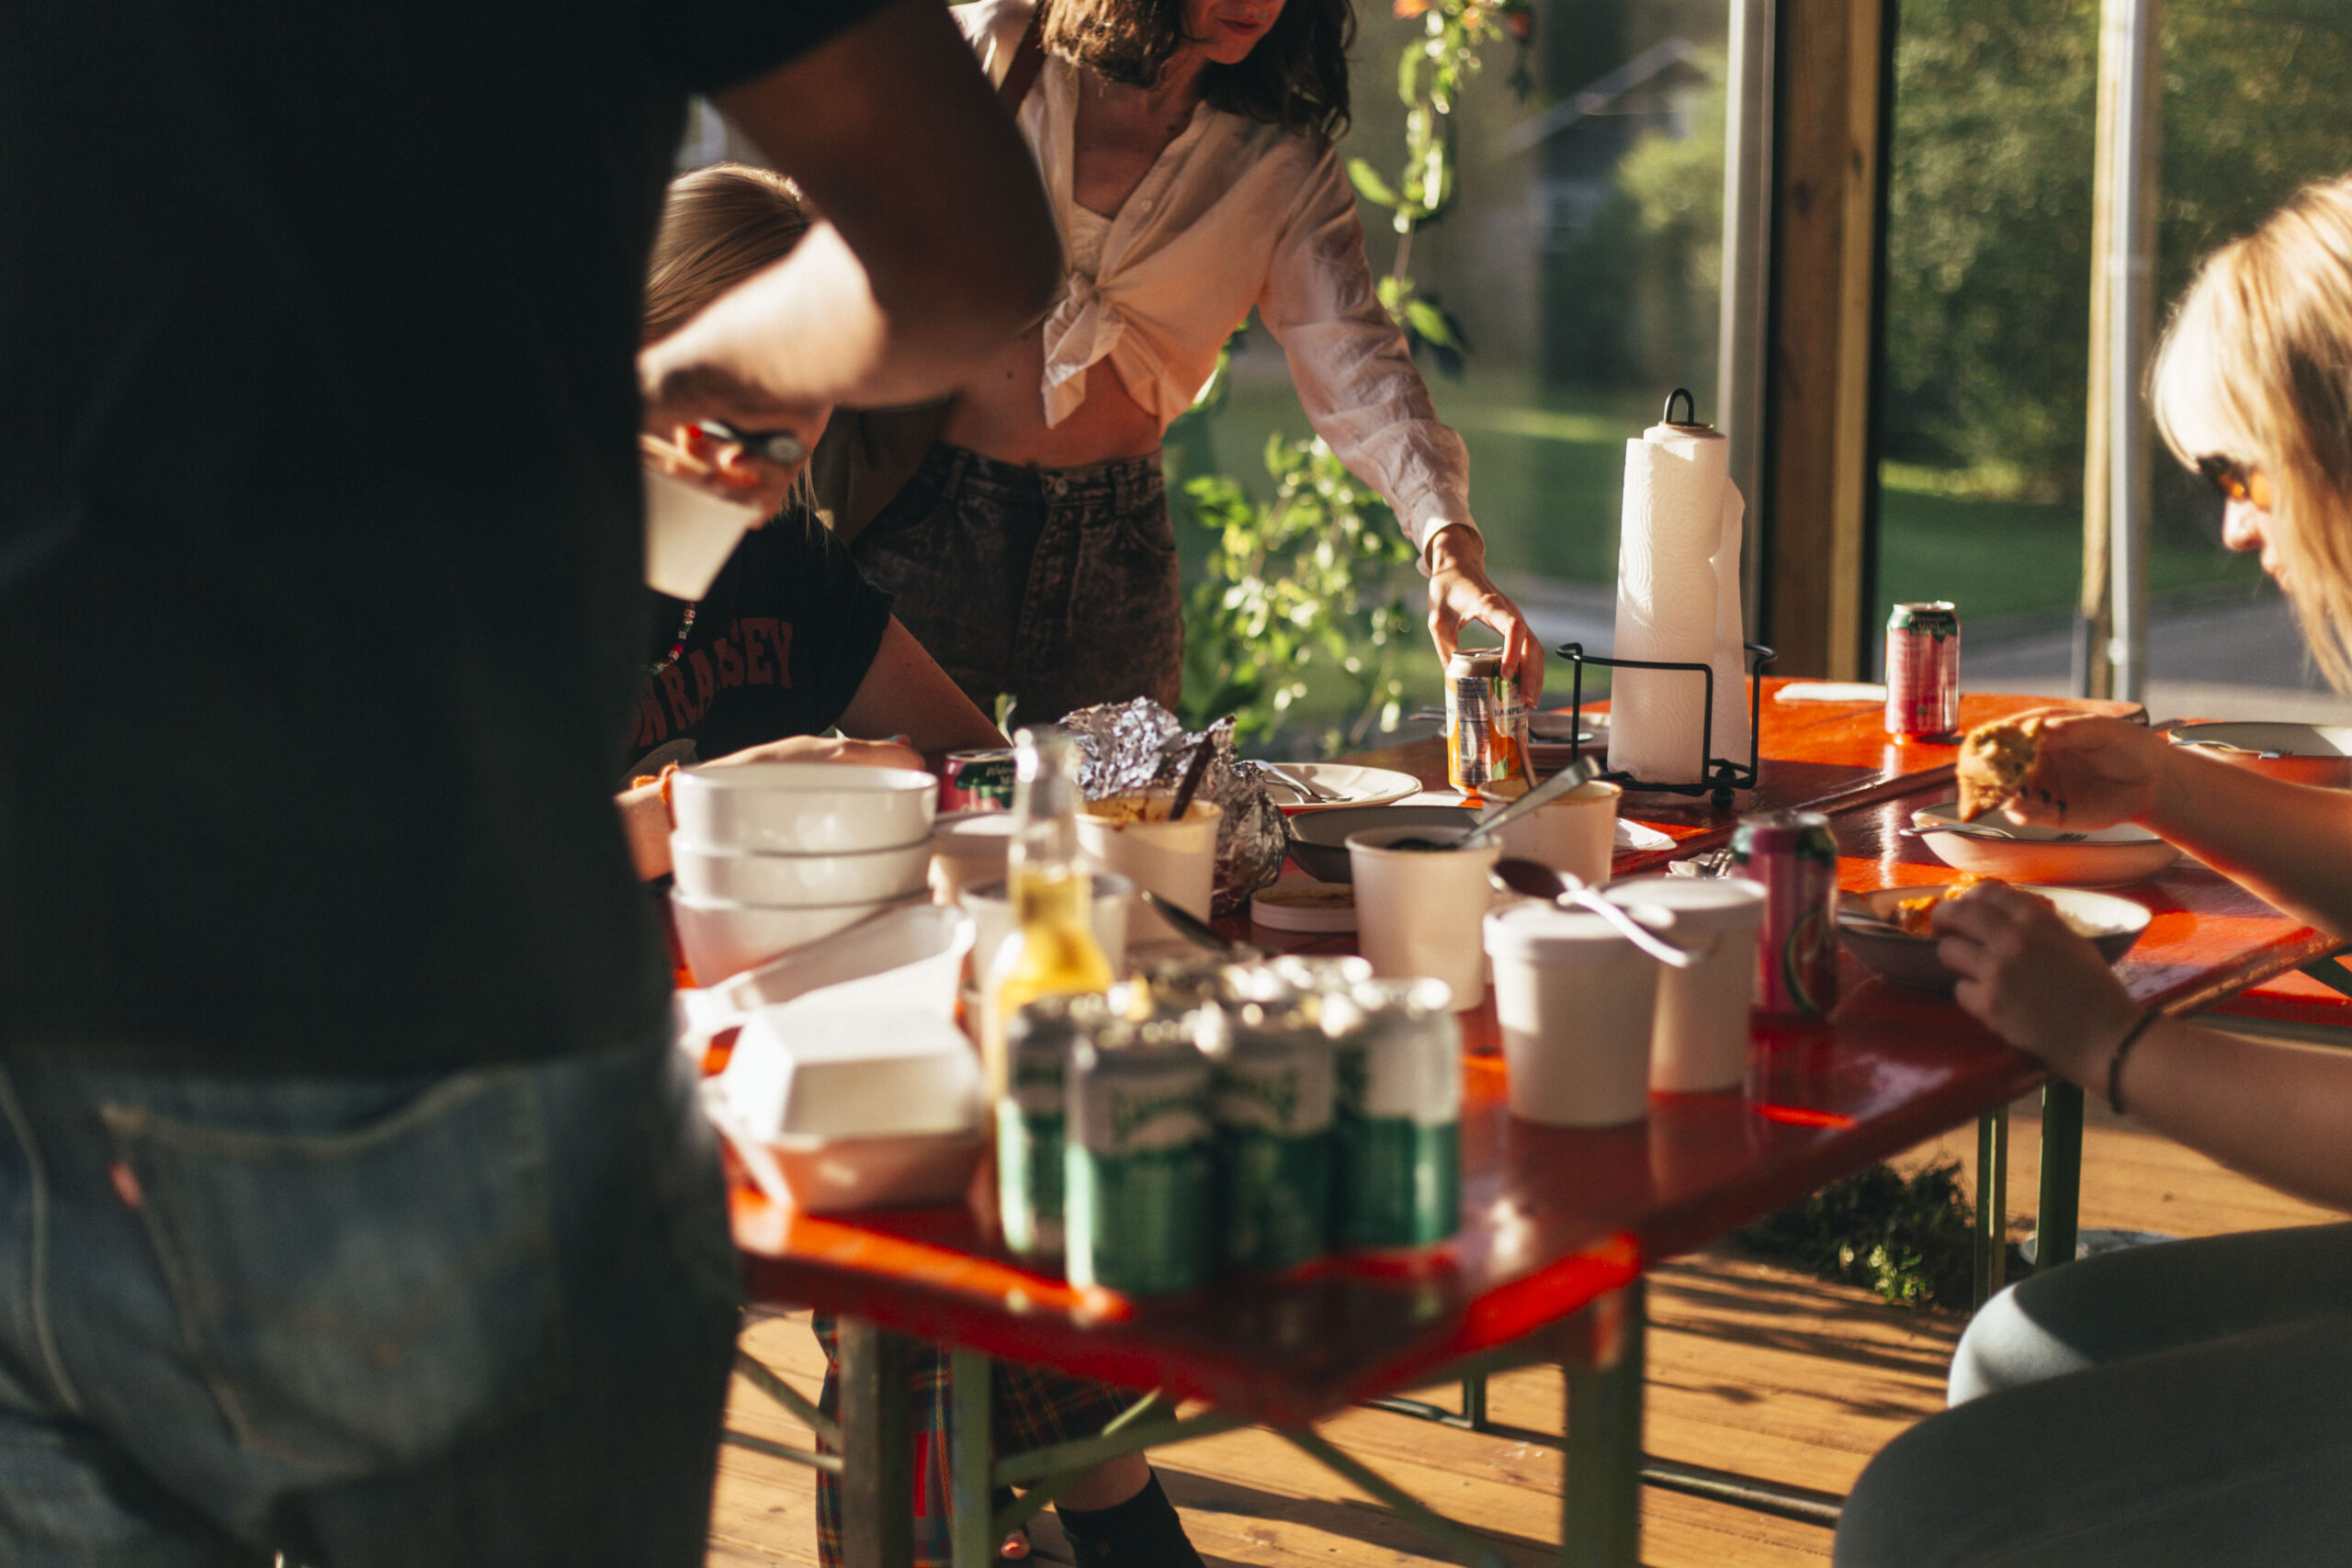 Outdoor patio meal share